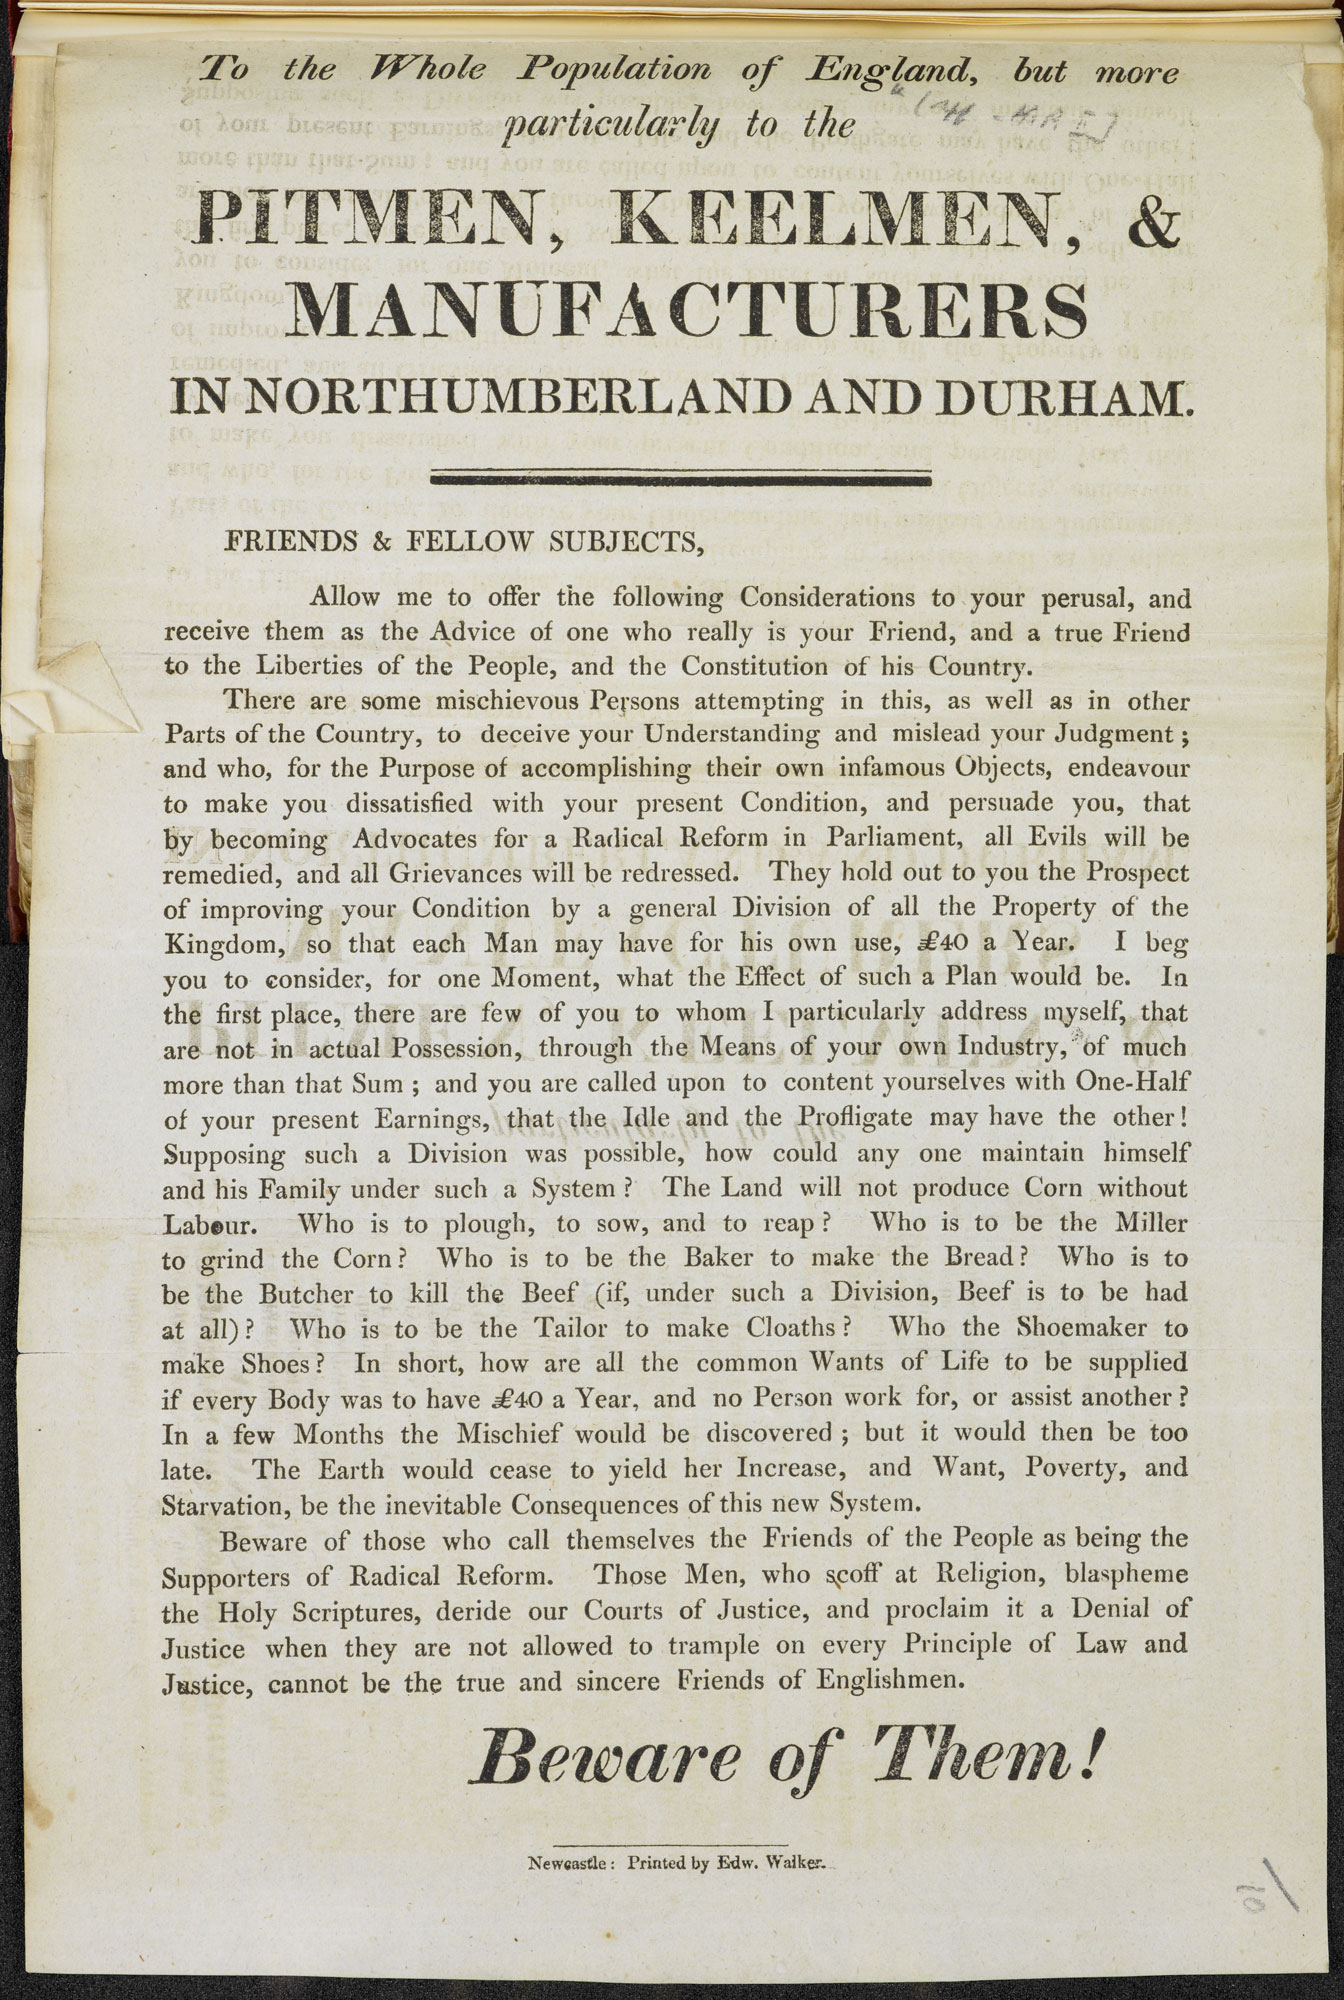 Poster about political reform and radicalism in north England [page: single sheet]